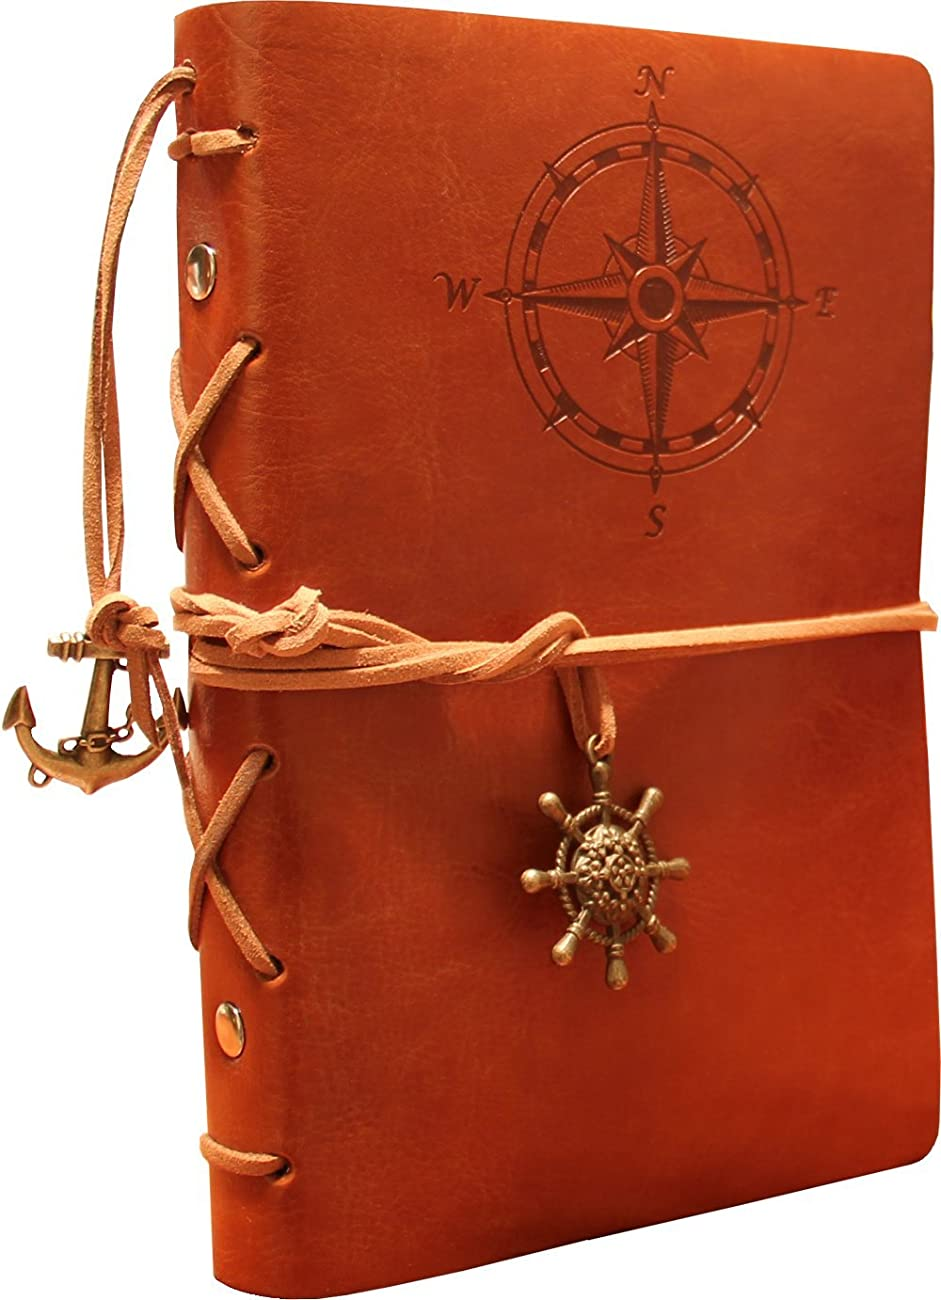 Classic Refillable Writing Journal (Naval Compass Embossing) - Vintage Leather (PU) Design- Includes Bamboo Pen 5